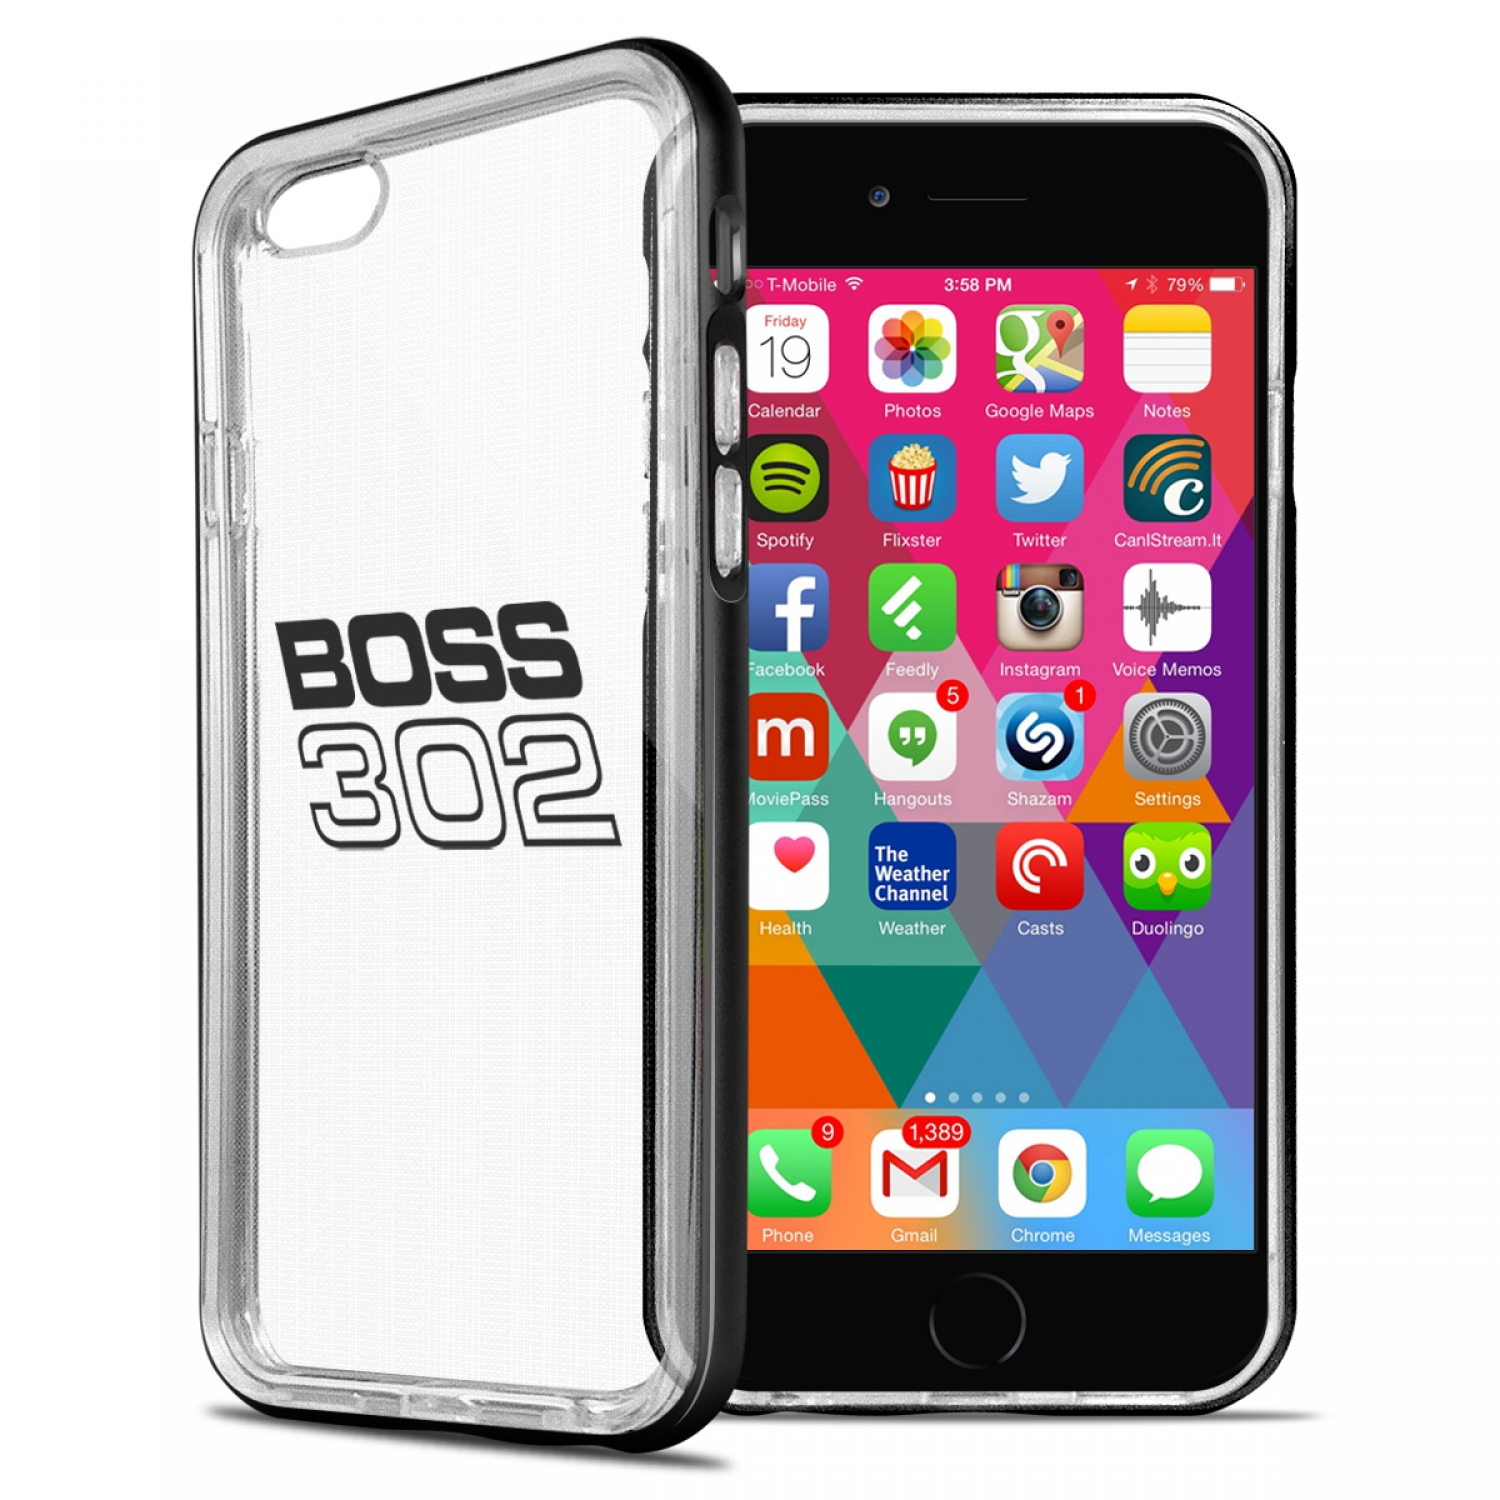 Ford Mustang Boss 302 iPhone 6 6s Shockproof Clear TPU Case with Metal Bumper Hybrid Phone Case